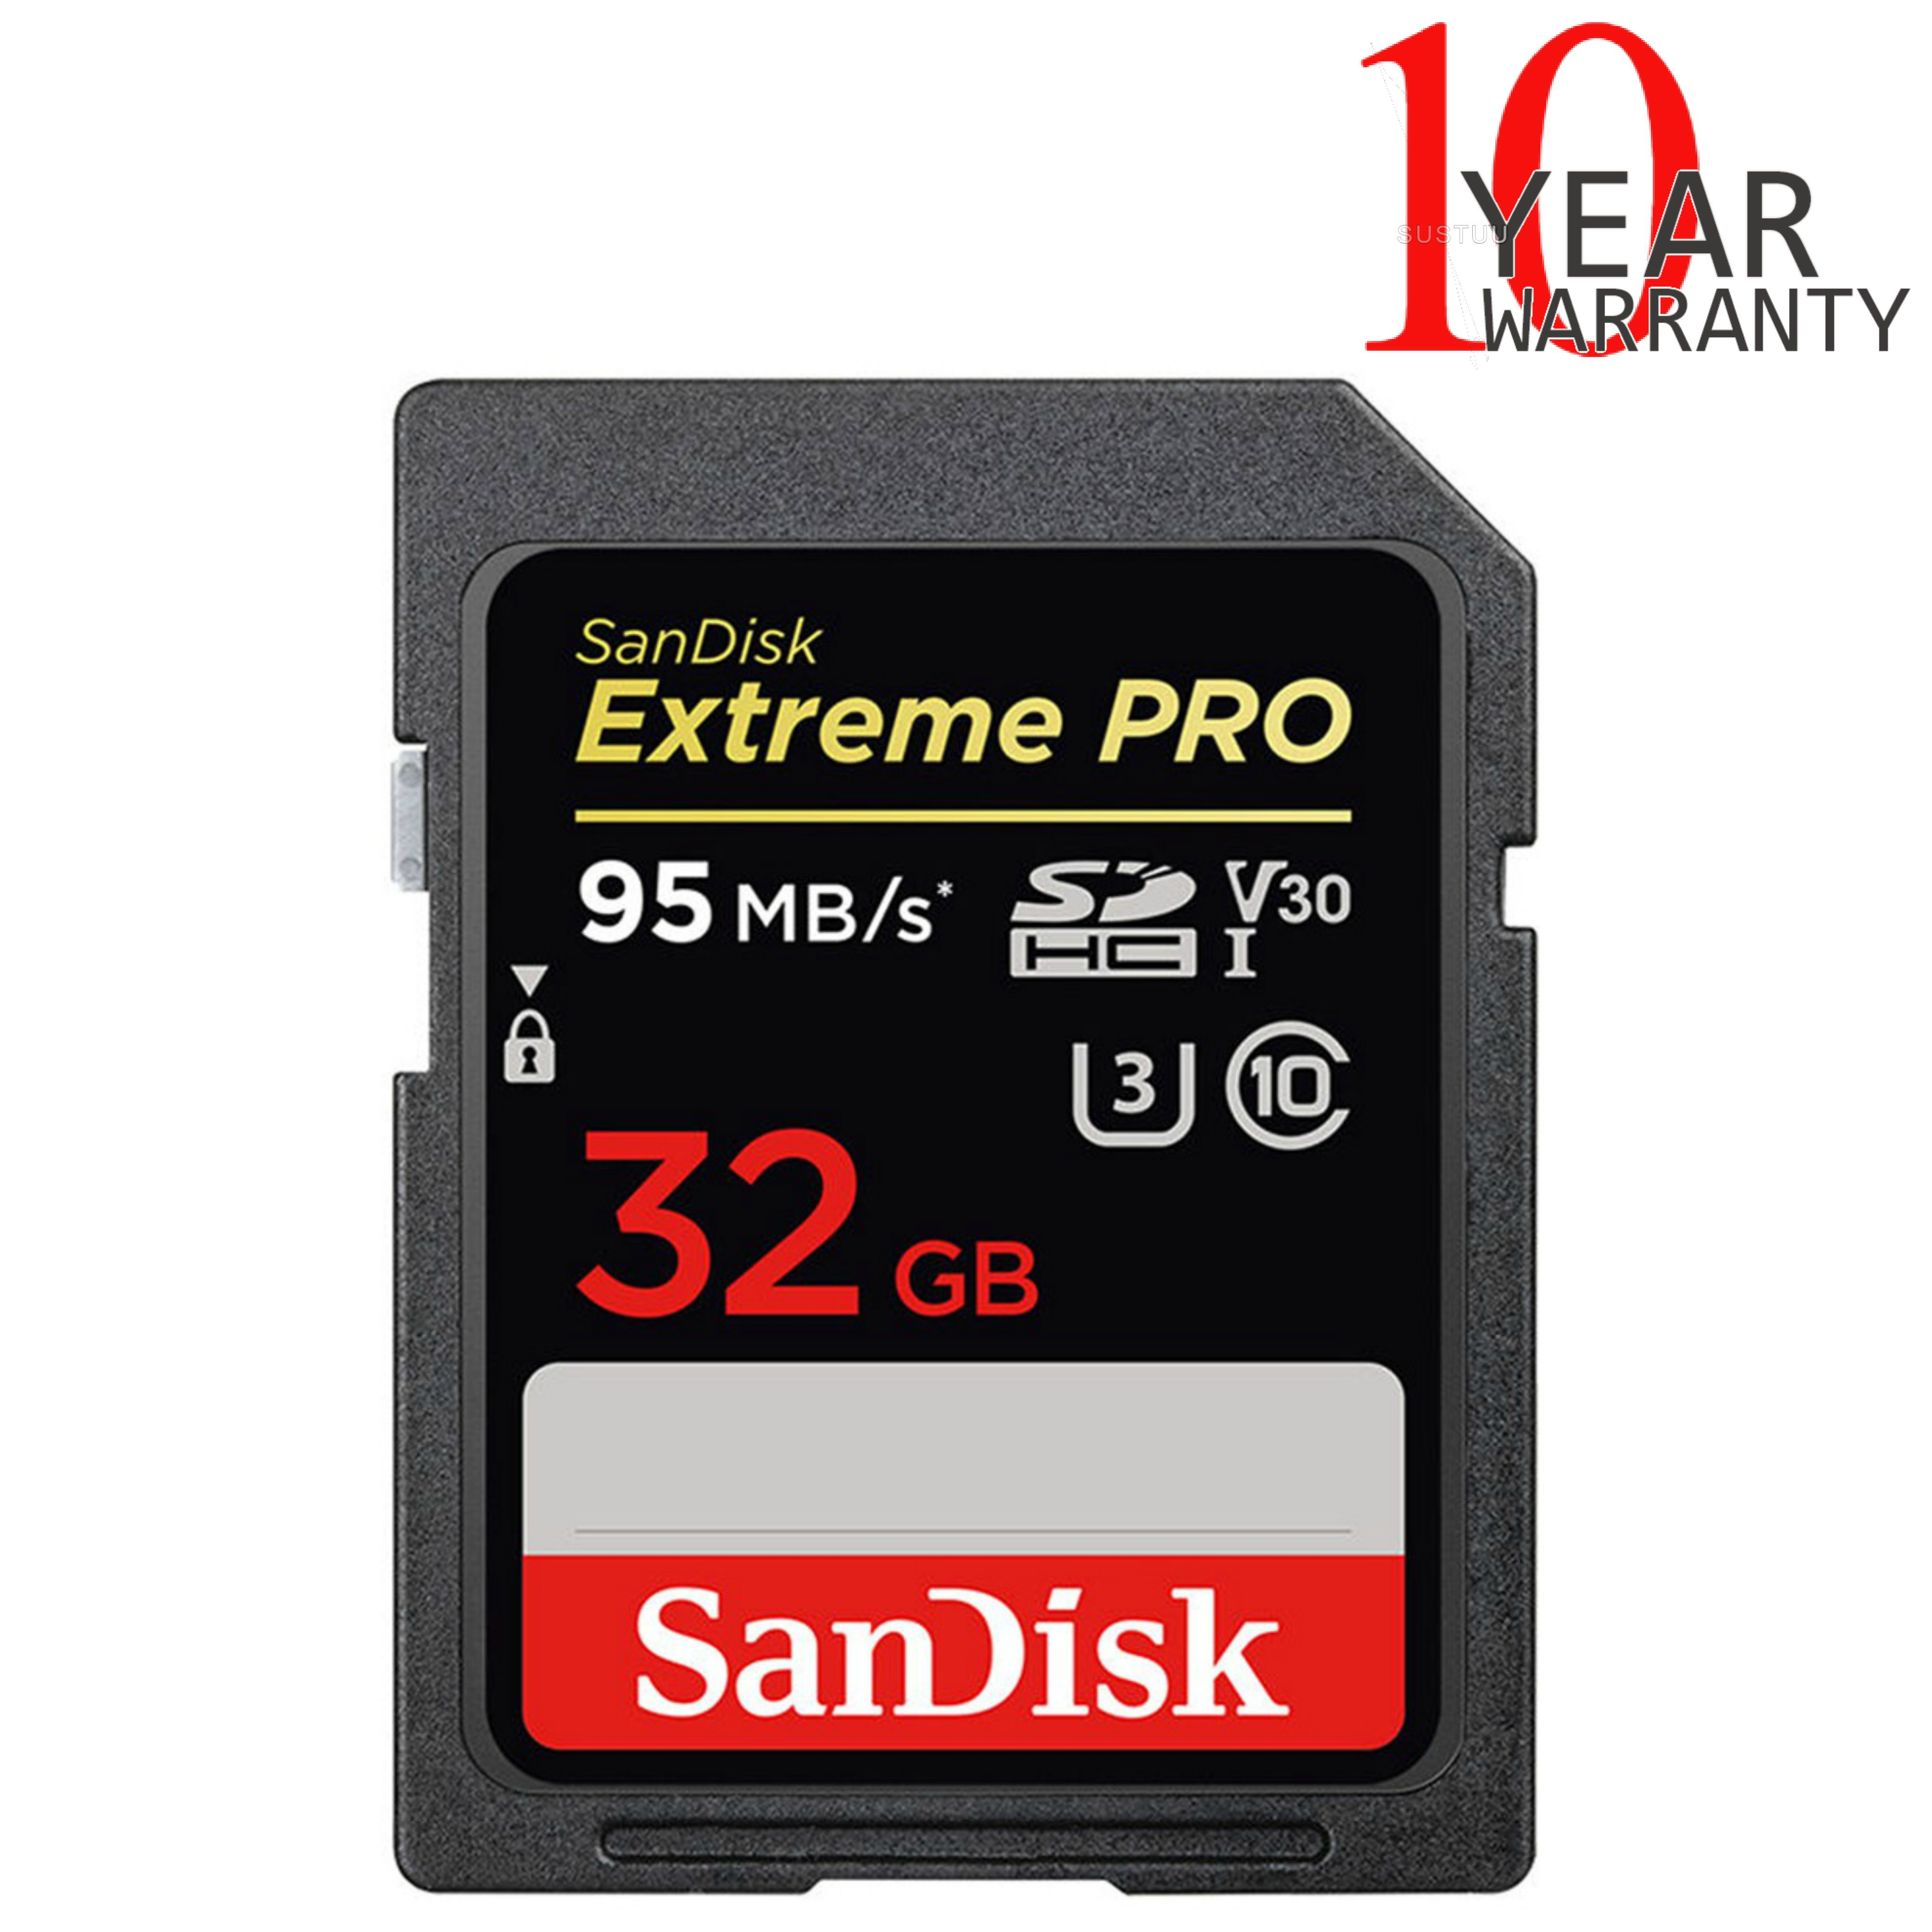 SanDisk 32GB Extreme PRO SDHC UHS-I Memory Card | Upto 95MB/s | For Digital Cameras